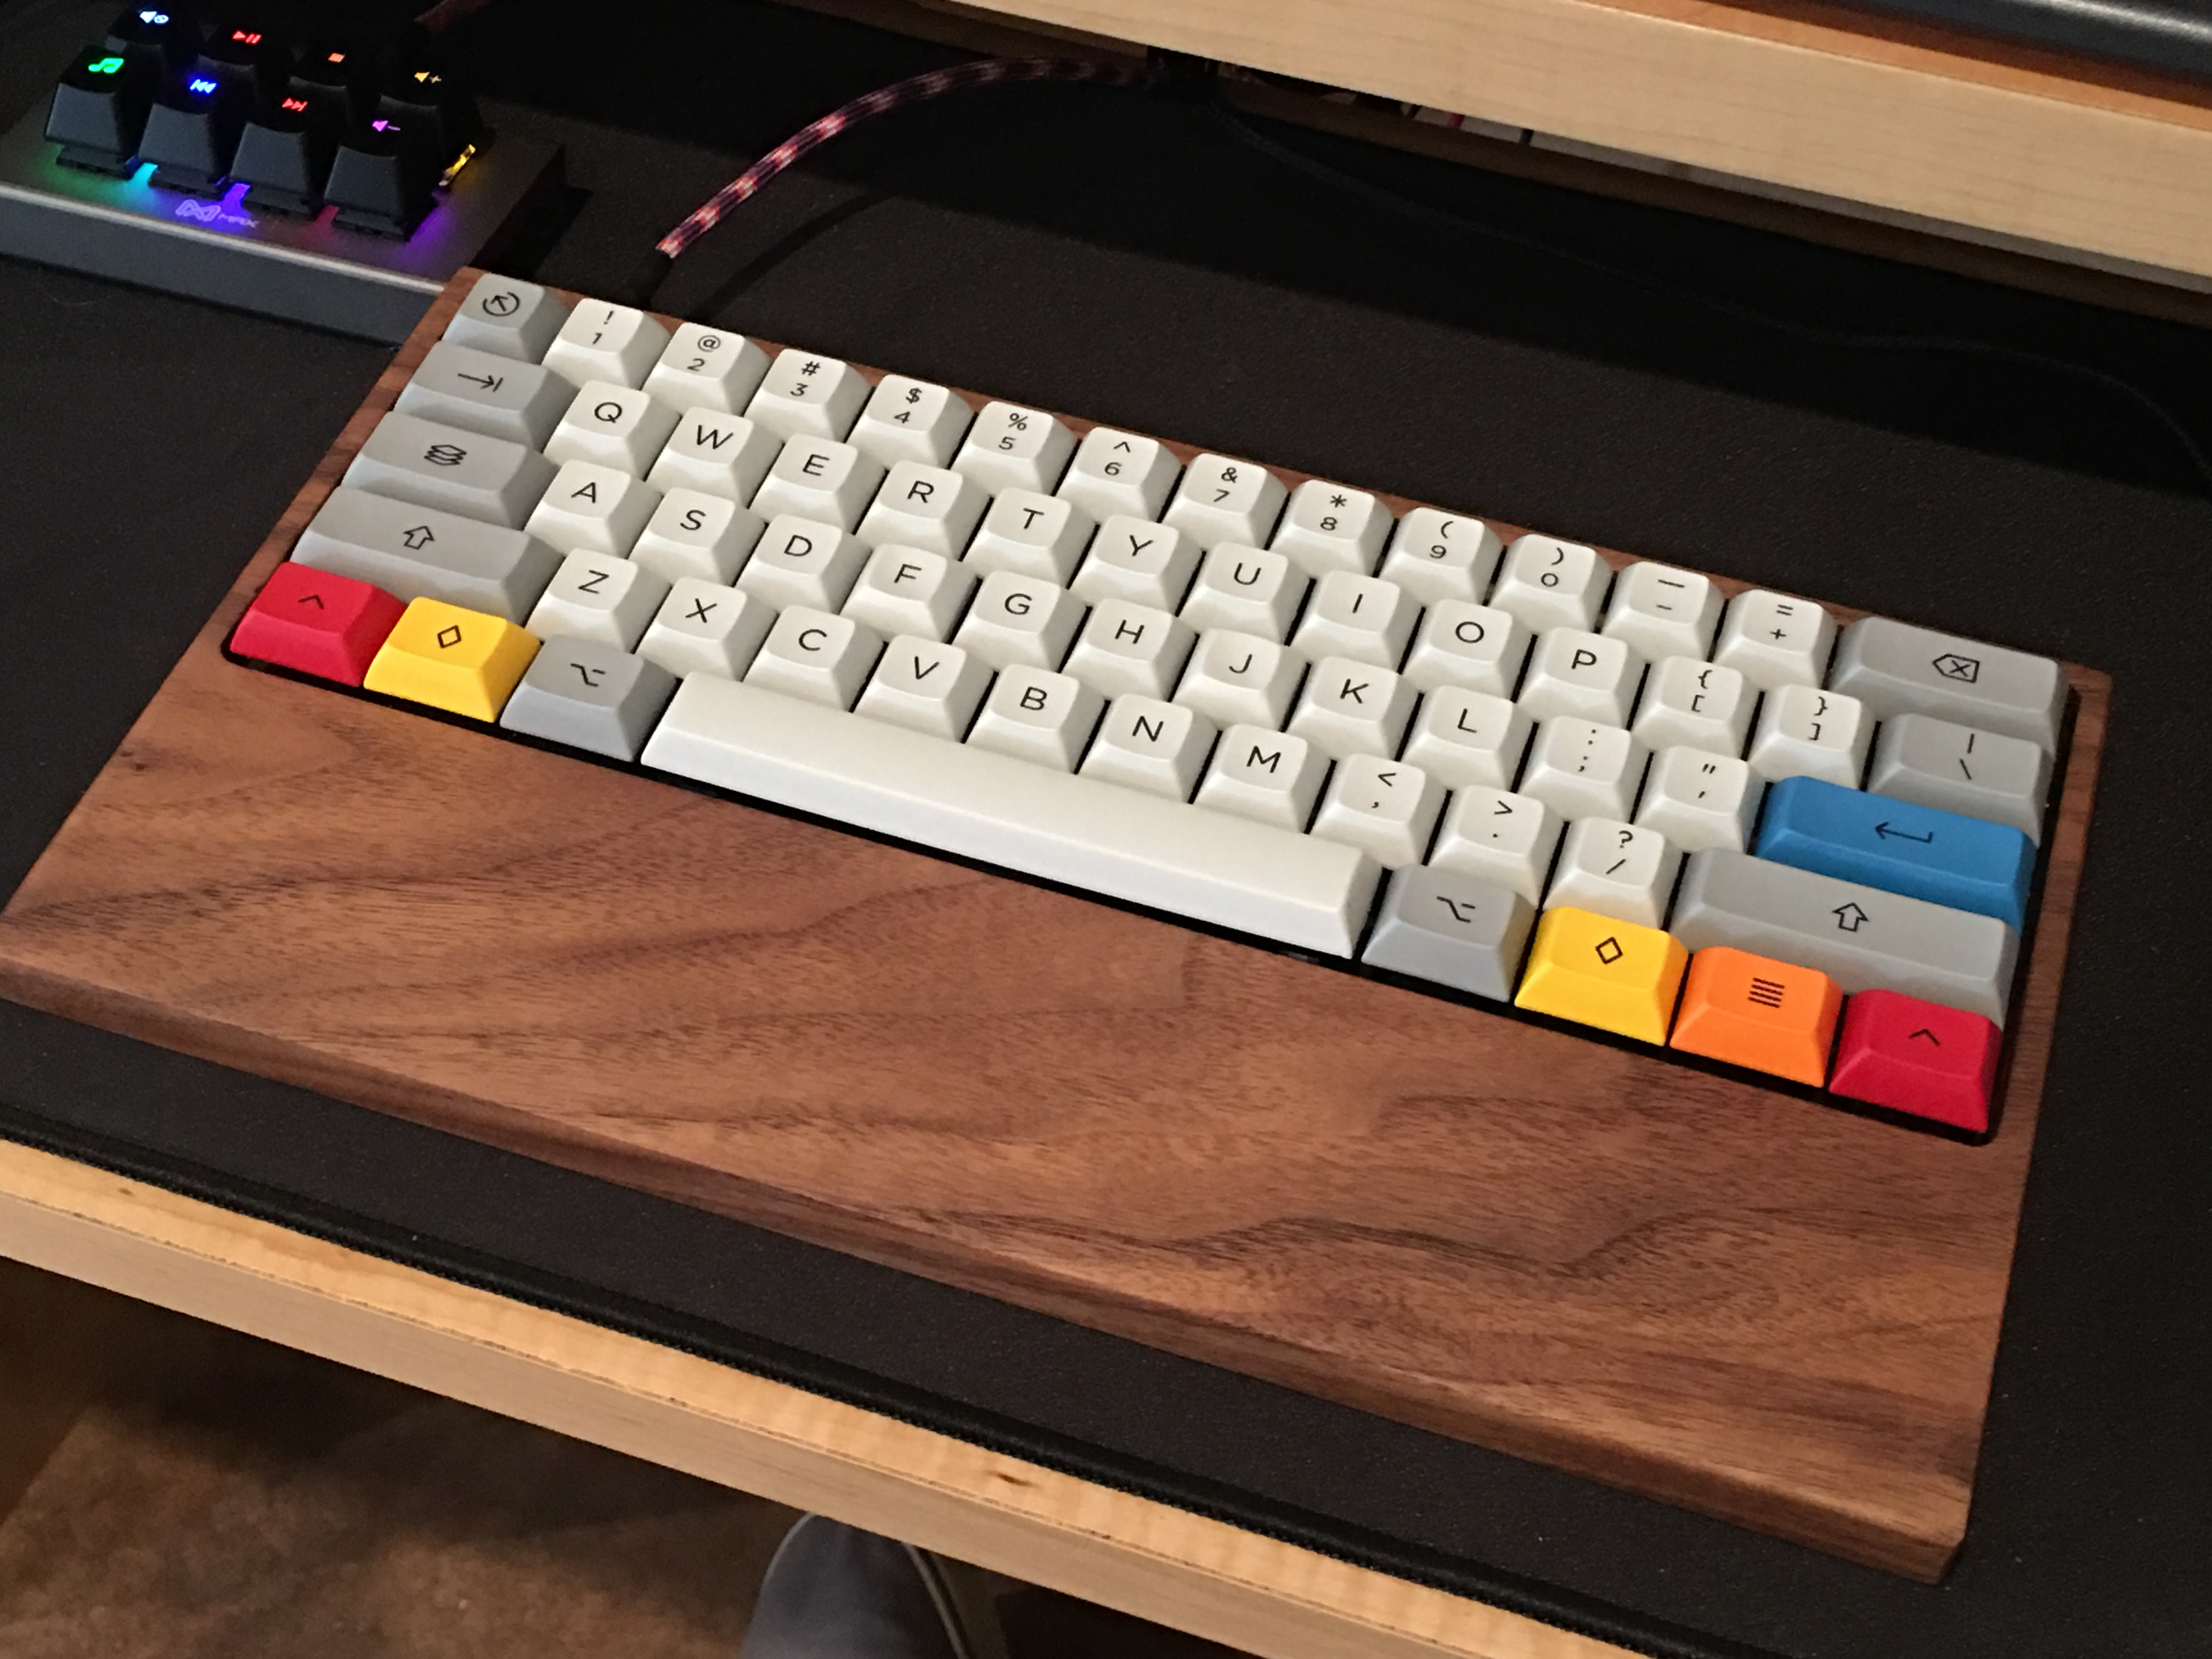 boyiee tech very small market exist also advicesuggestions keyboard they pretty already much mechanical